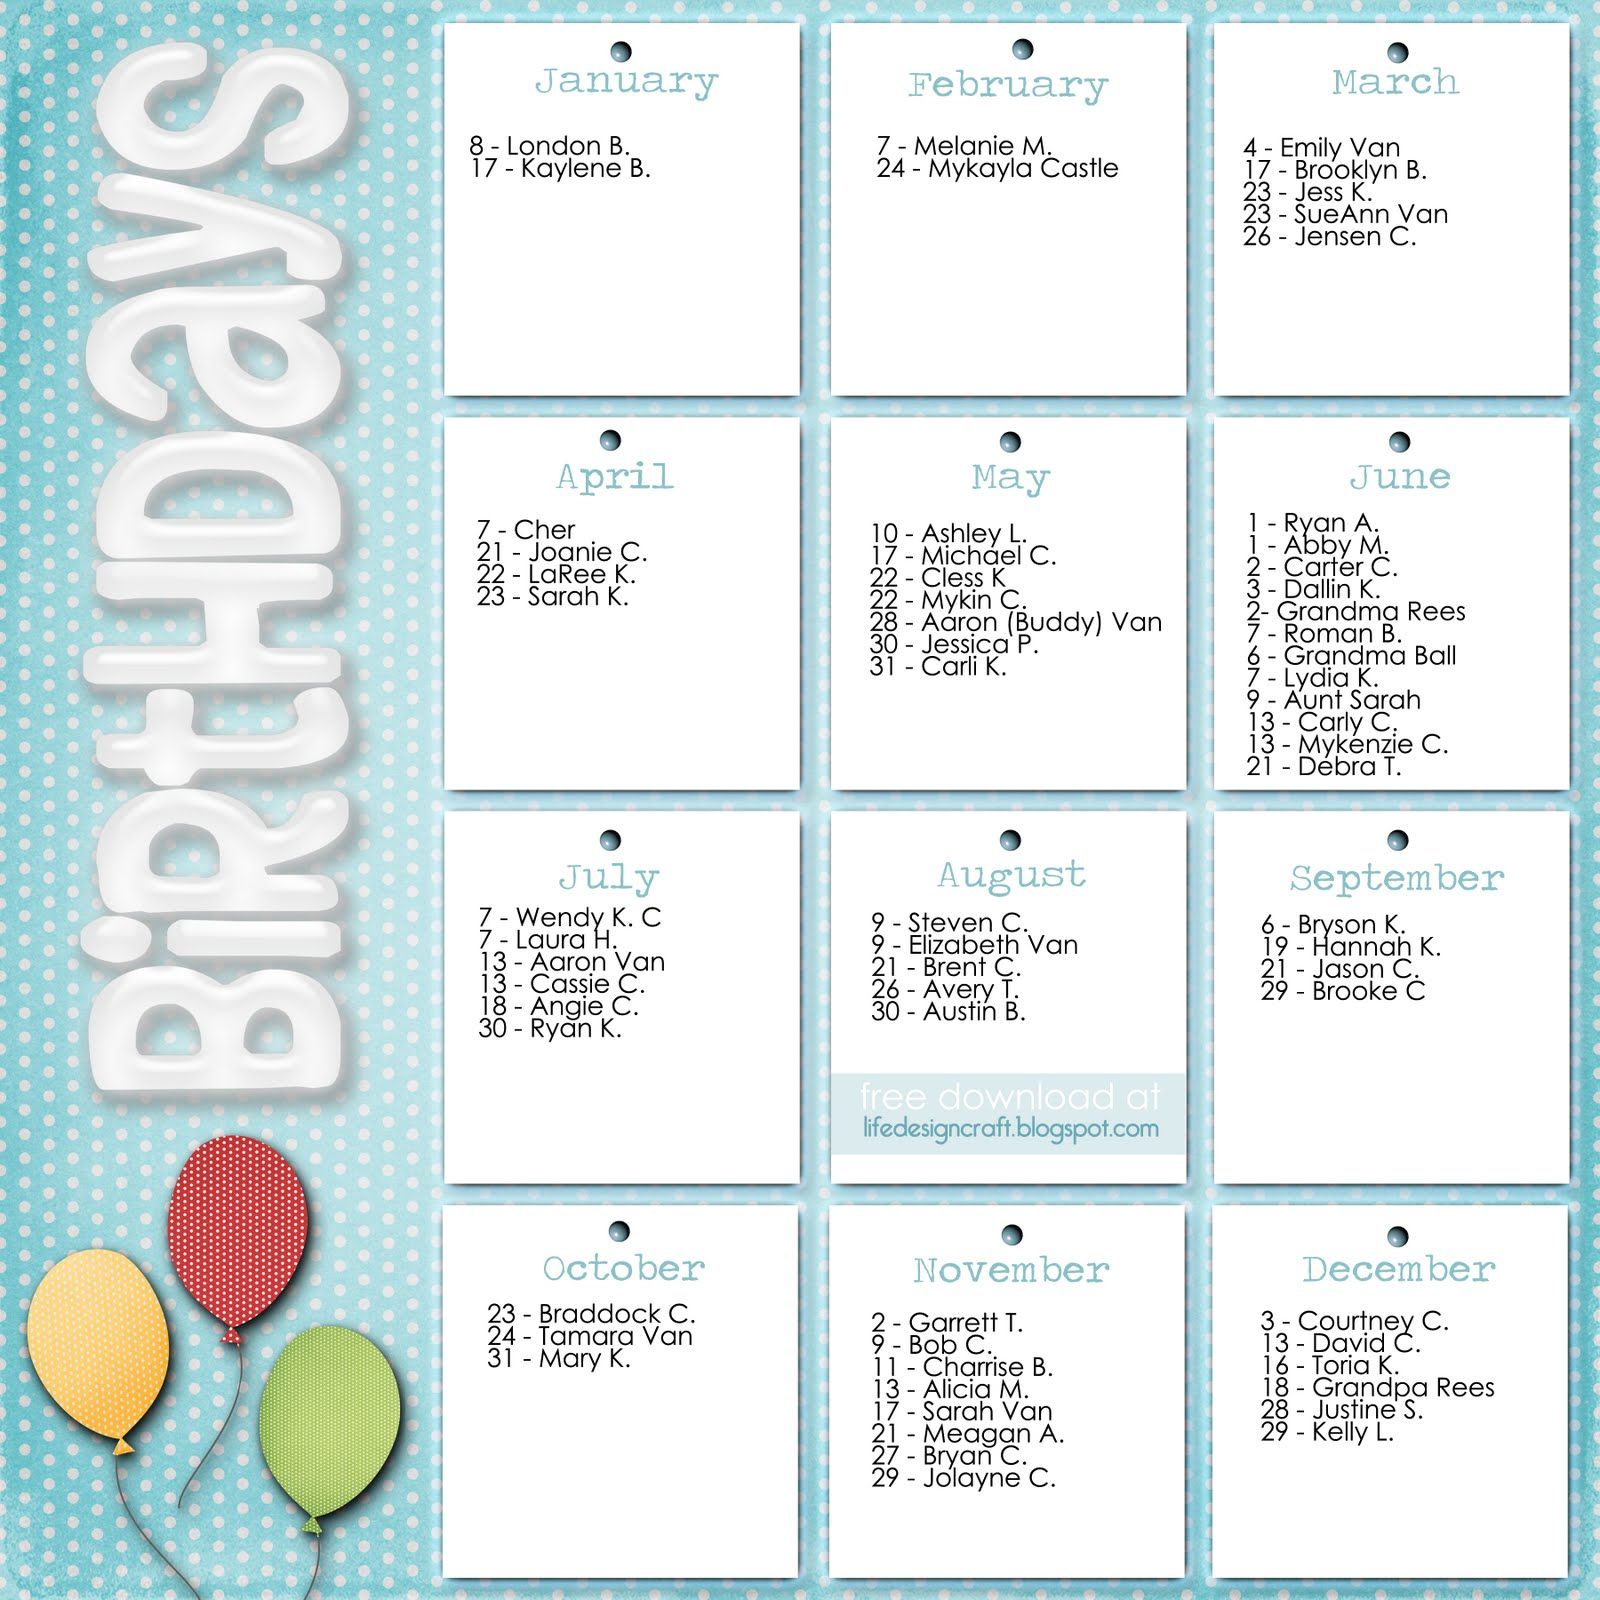 Birthday Calendars 7 Free Printable Word Templates – Birthday Word Template